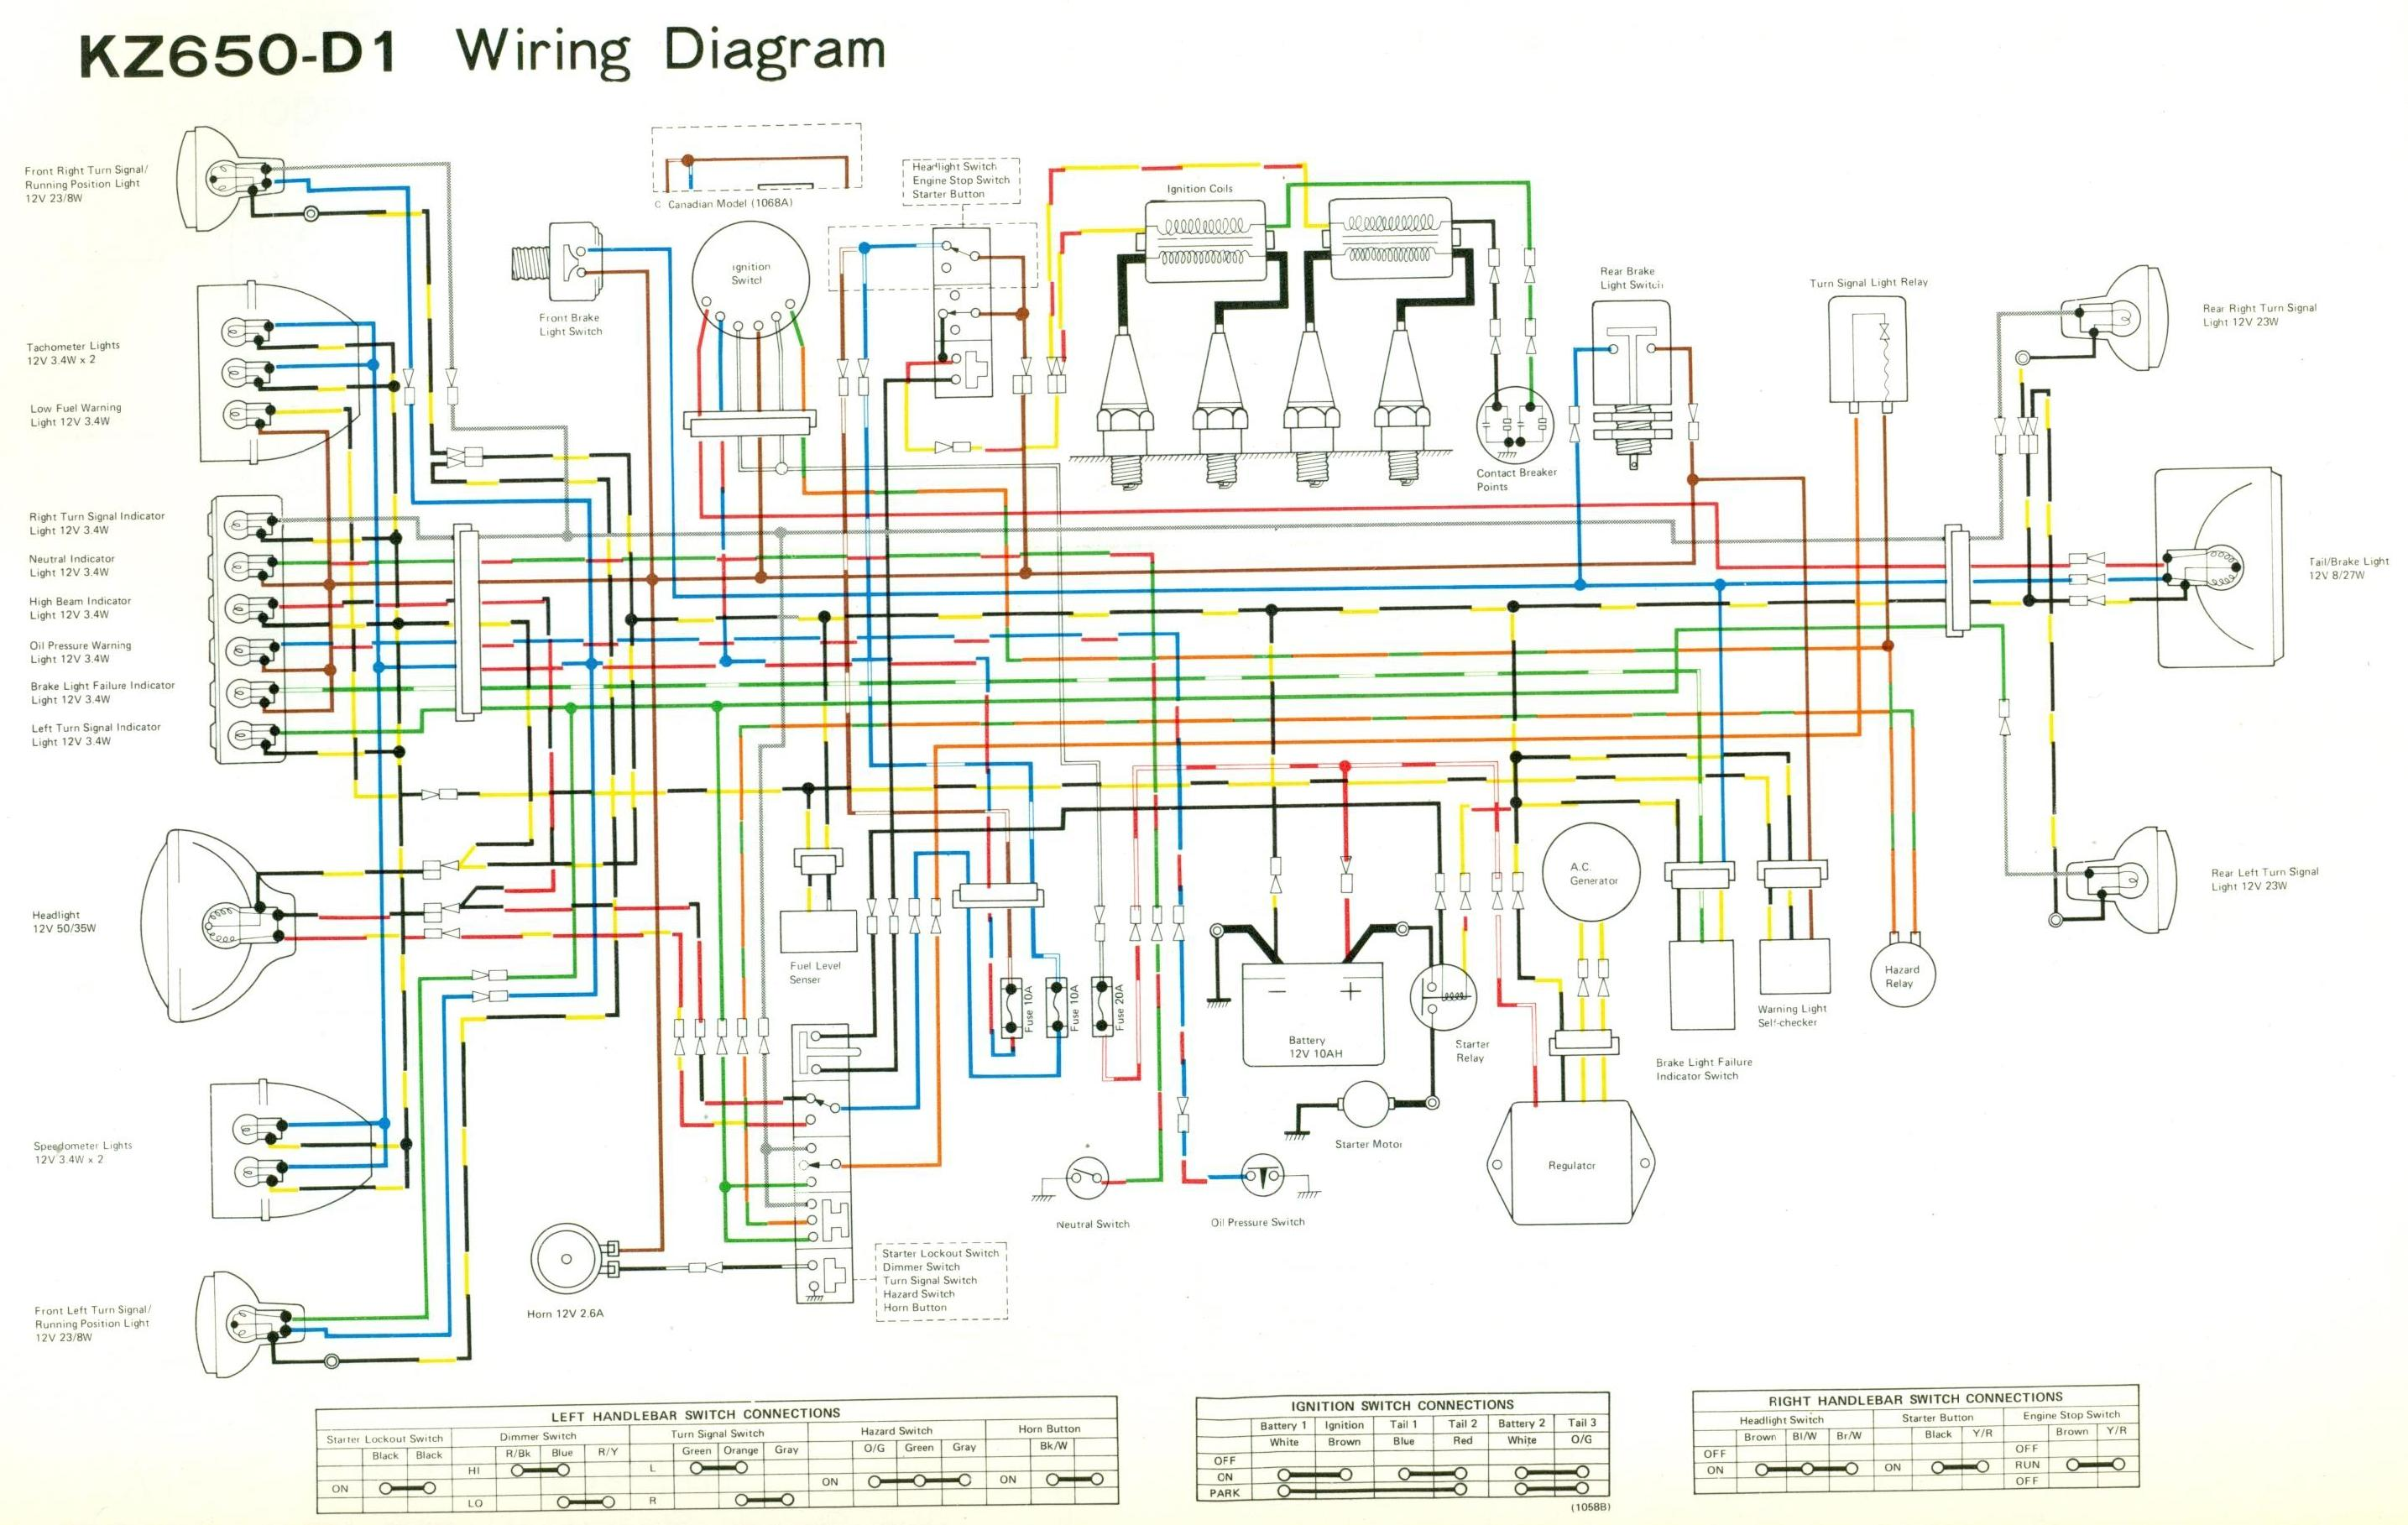 [SCHEMATICS_4UK]  04DCB Kawasaki Kvf 650 Wiring Diagram | Wiring Library | 2006 Kawasaki Brute Force Wiring Diagram |  | Wiring Library